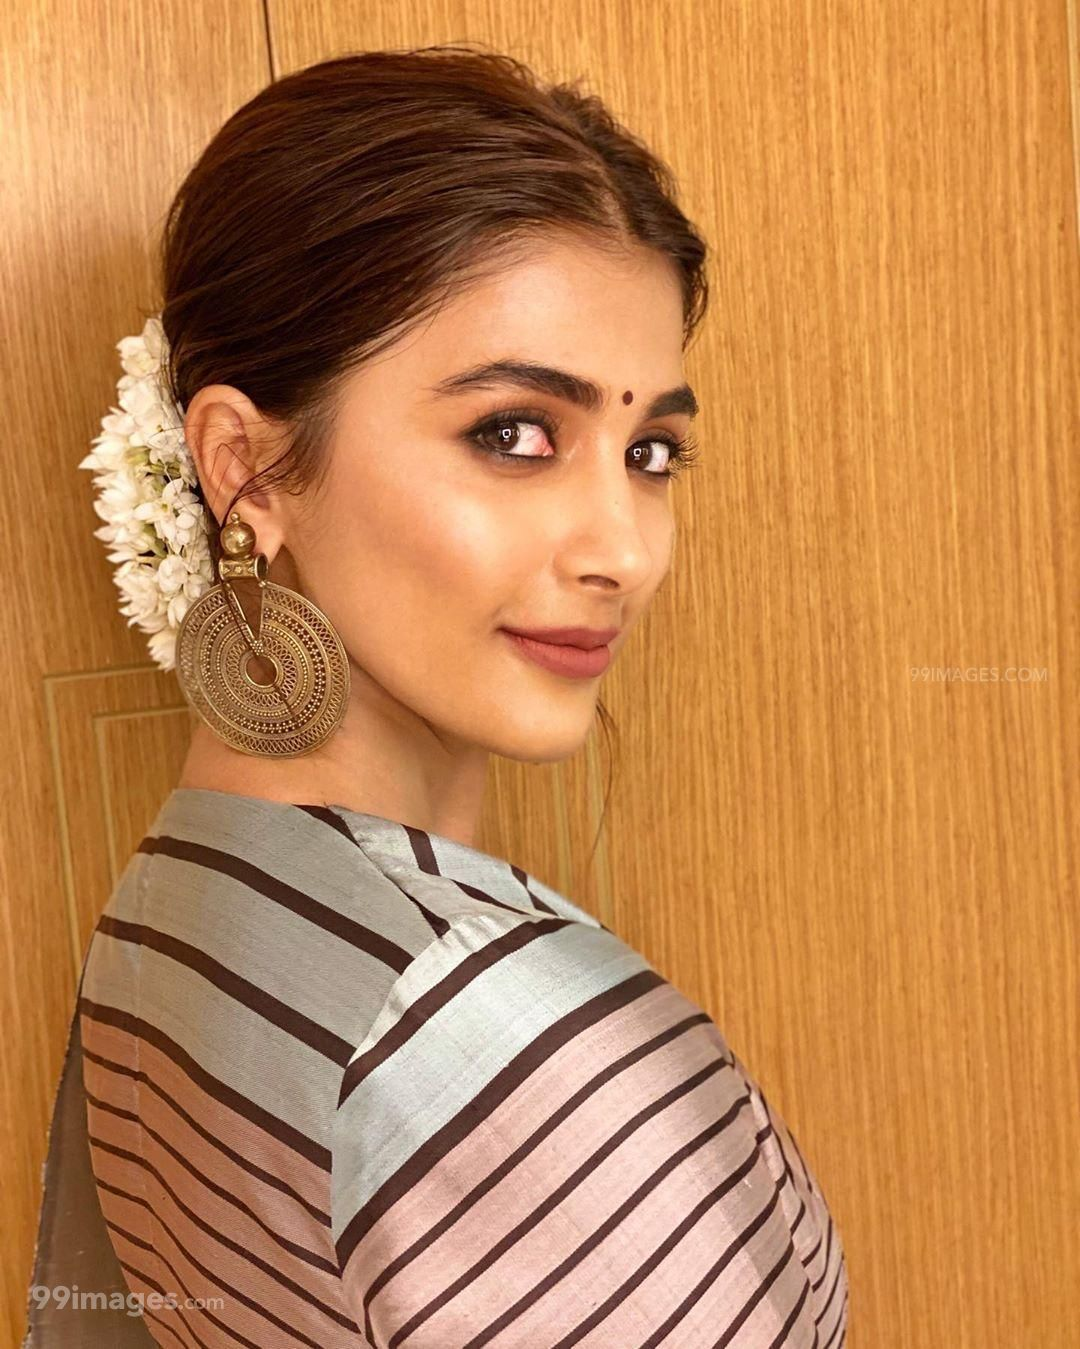 Pooja Hegde Beautiful Photos & Mobile Wallpapers HD (Android/iPhone) (1080p) (294248) - Pooja Hegde